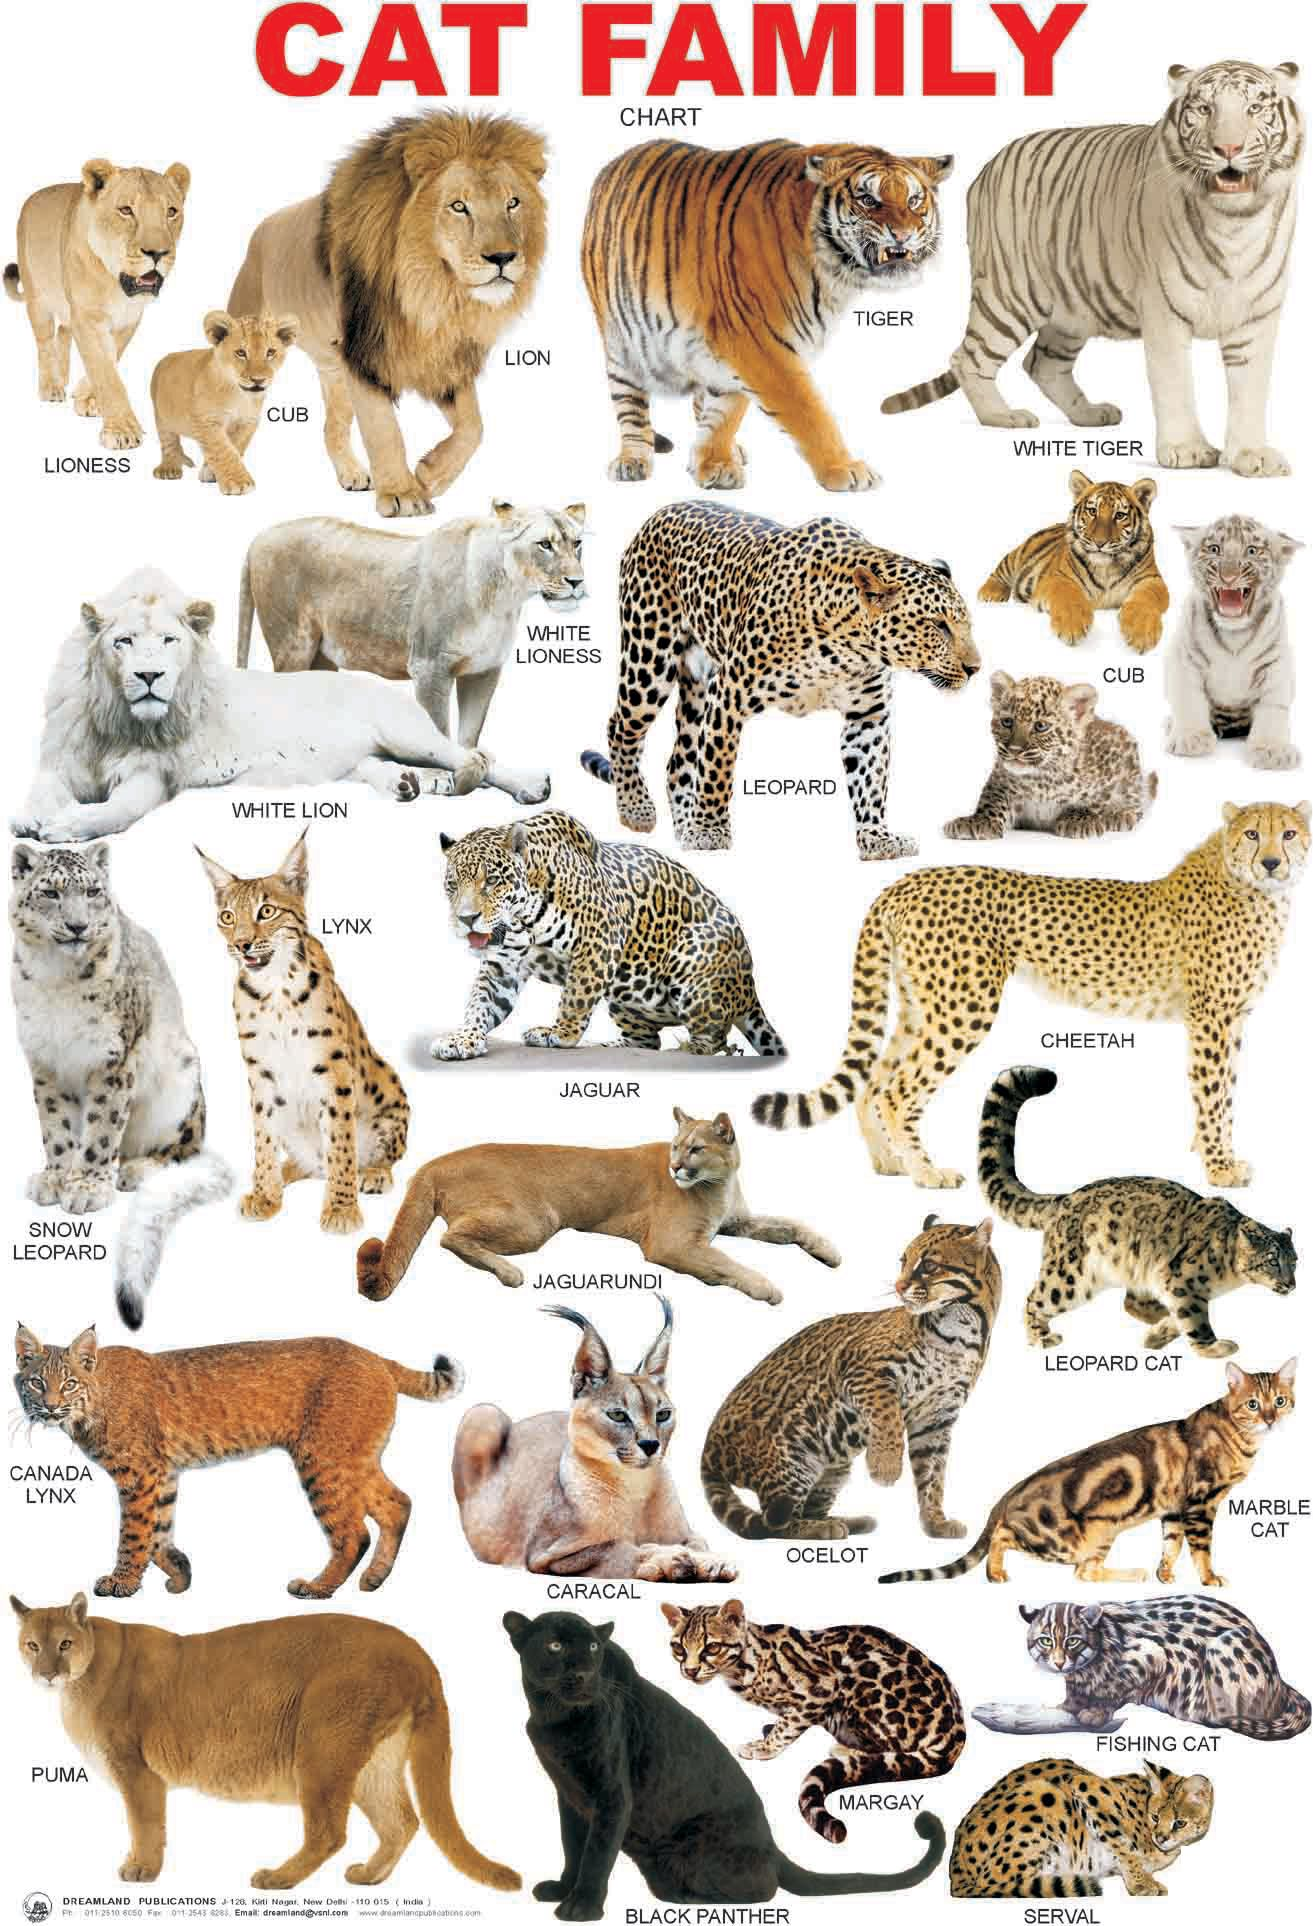 cat breed chart Google Search Cat breeds chart